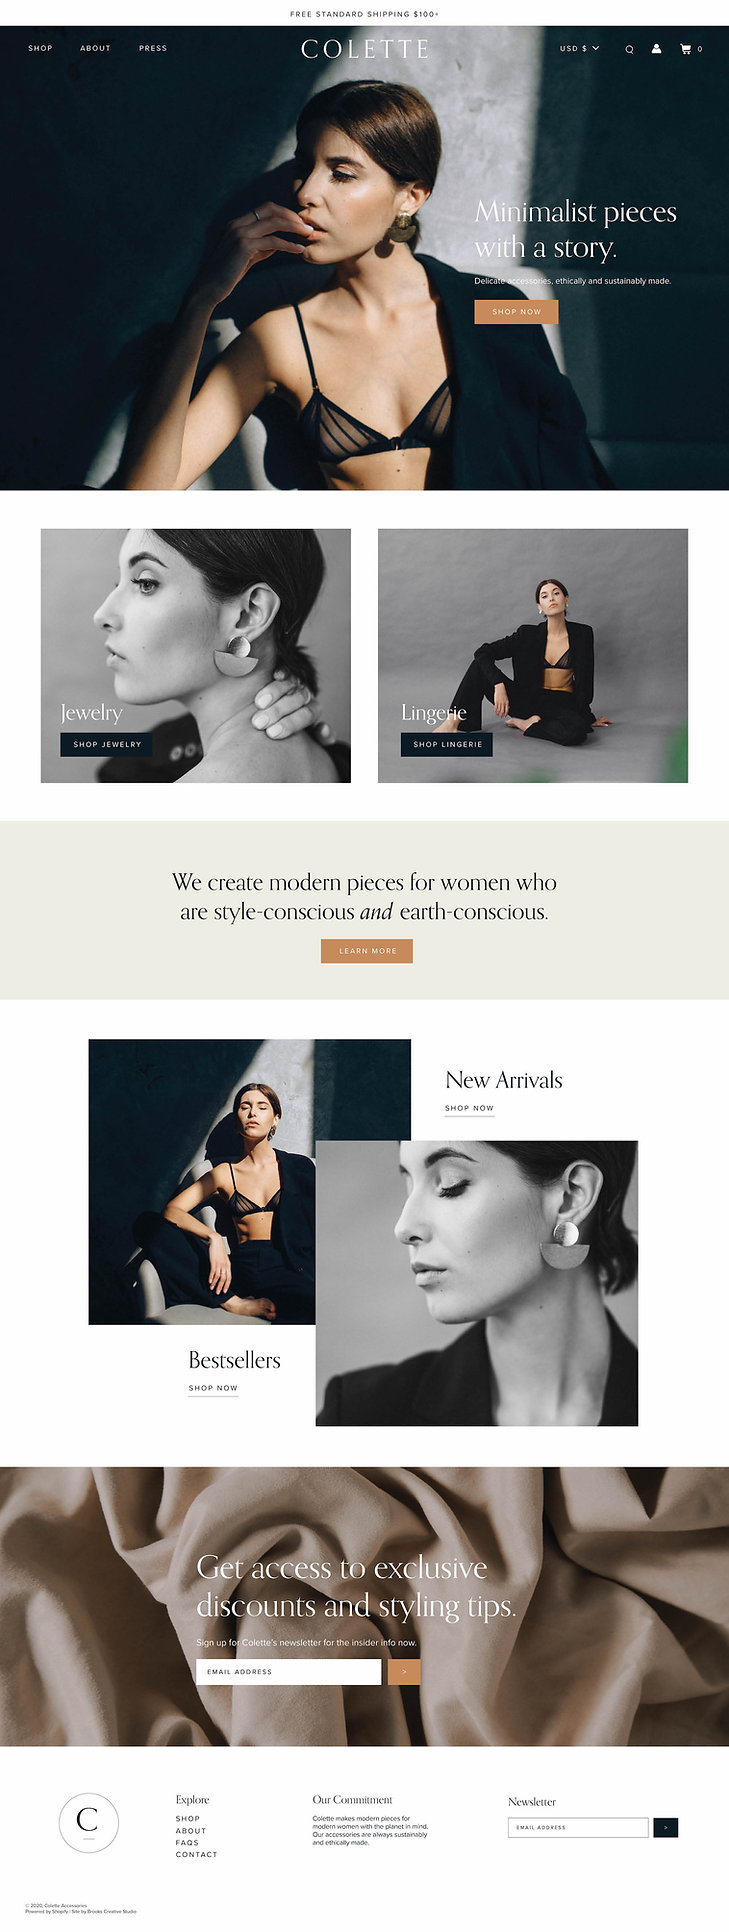 Shopify homepage design for high-end accessories brand